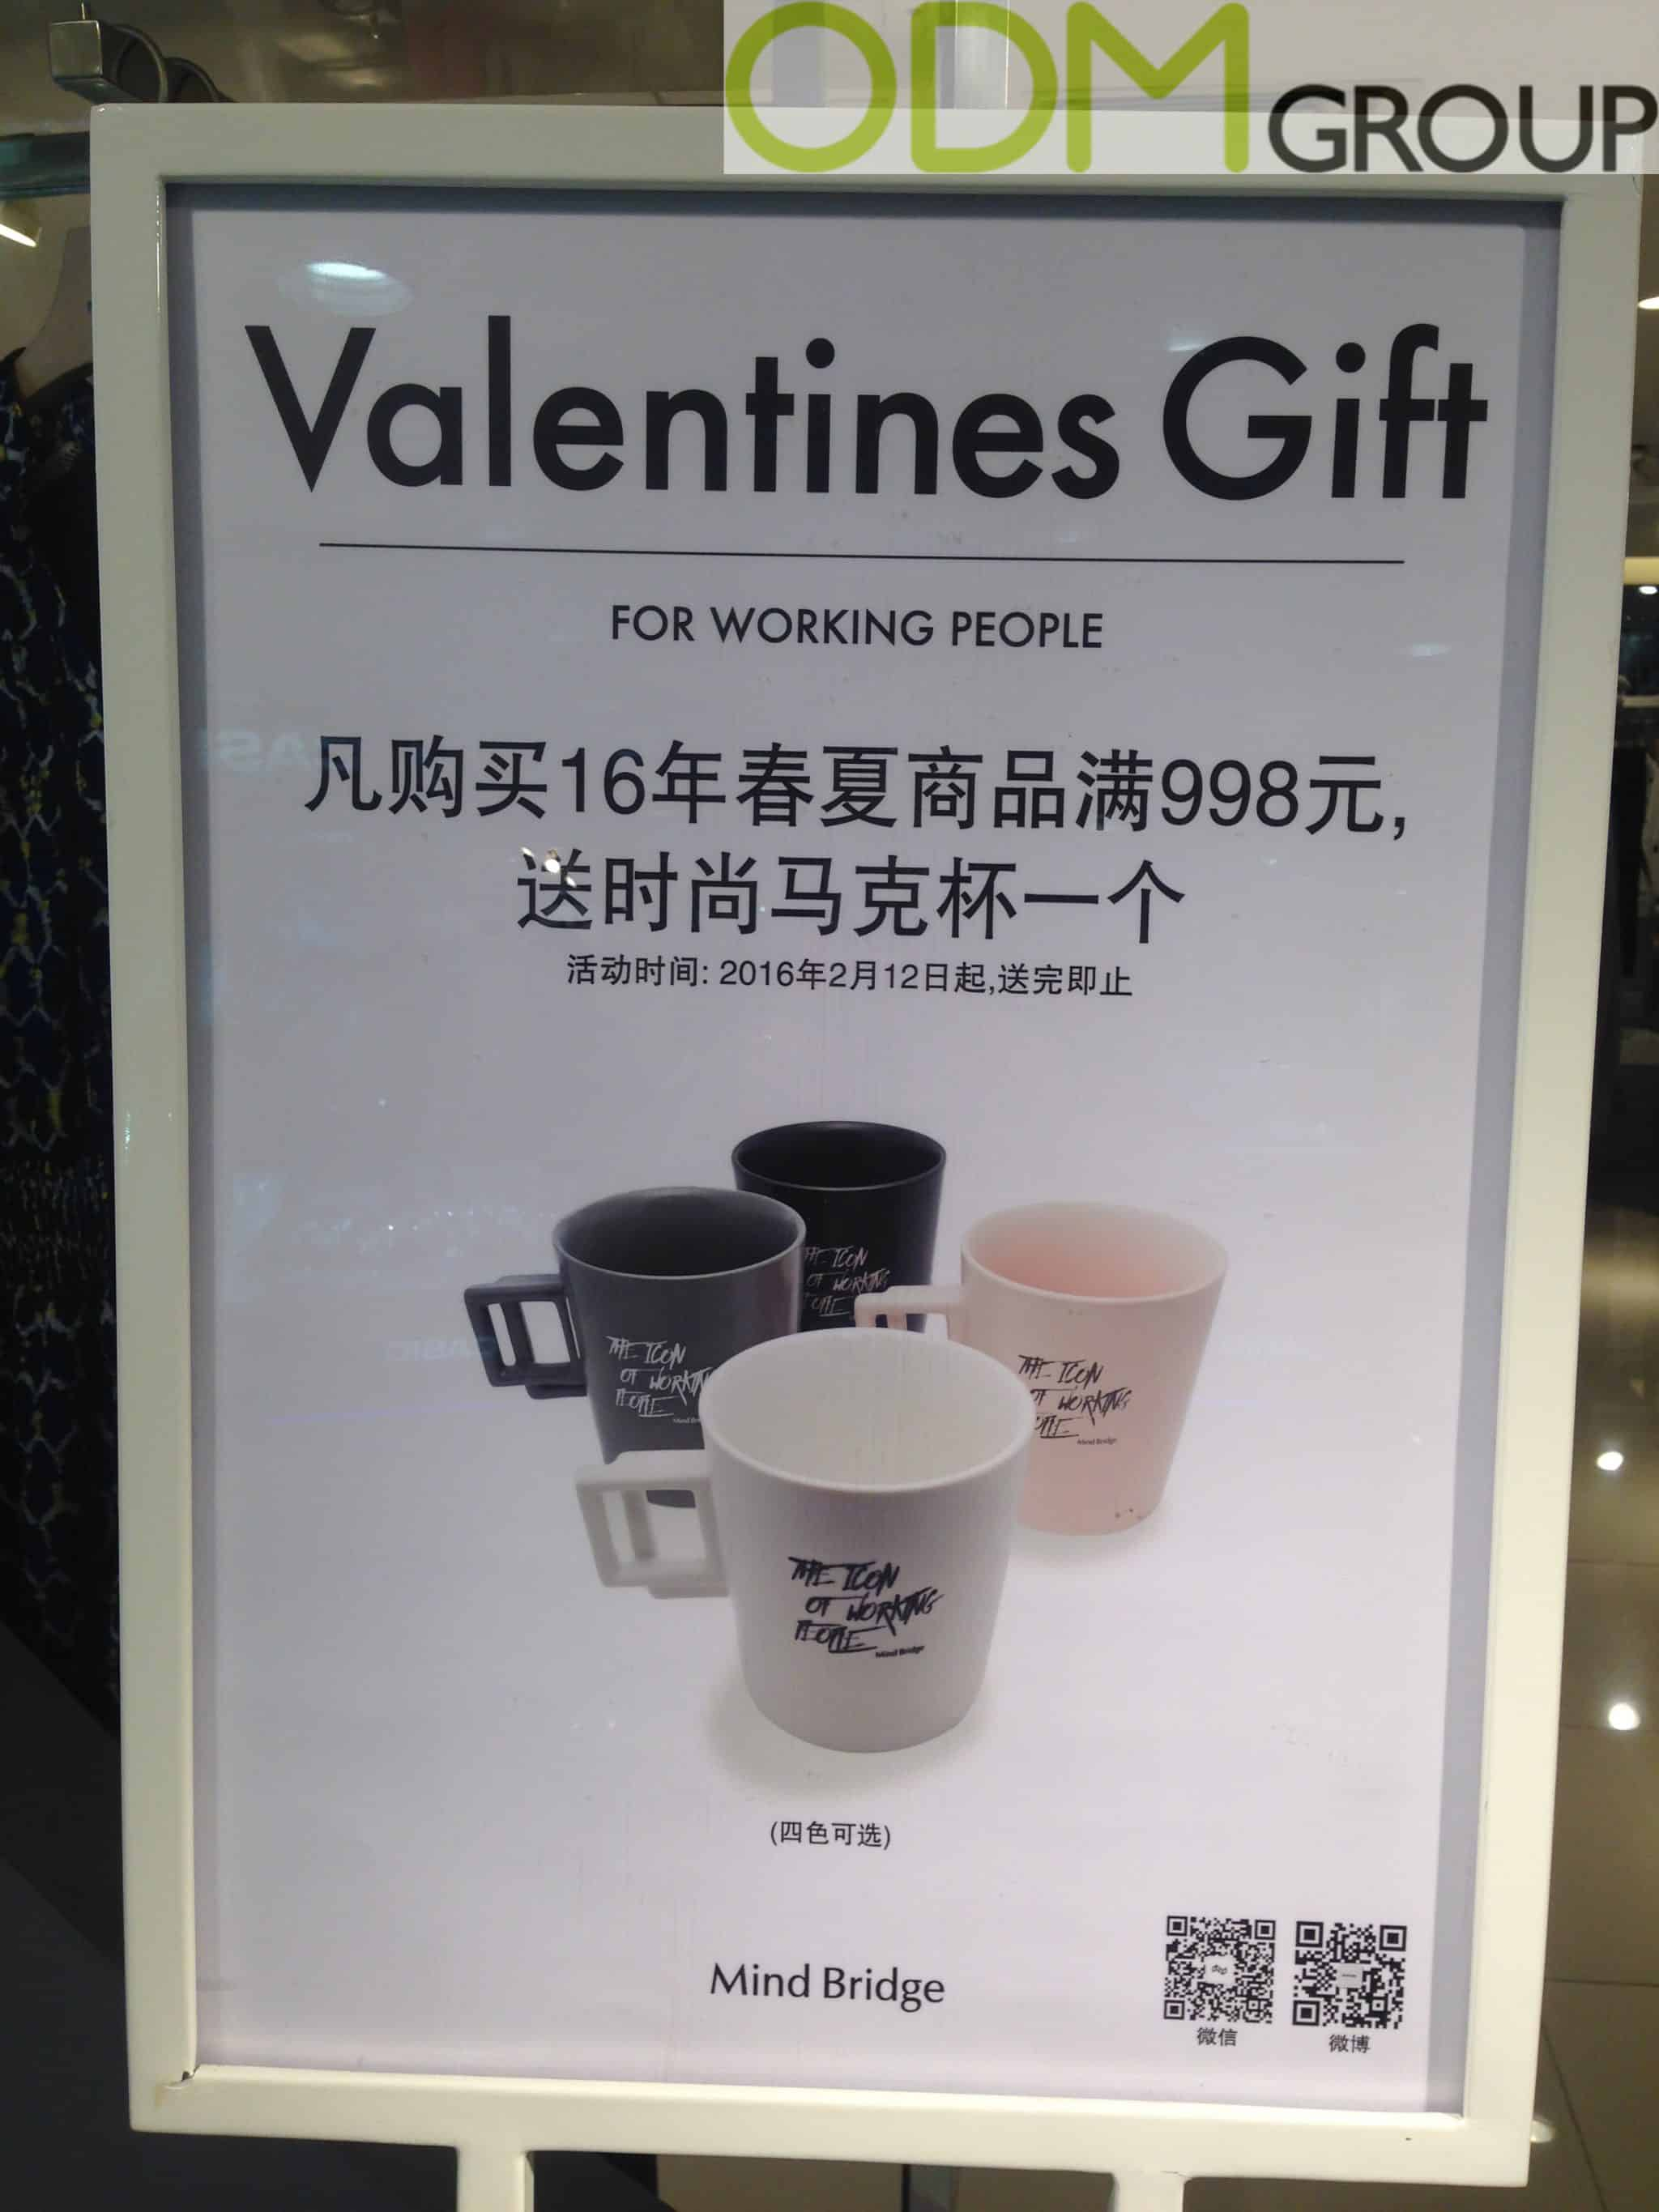 Valentines Day Promotion: Branded Mug by Mind Bridge